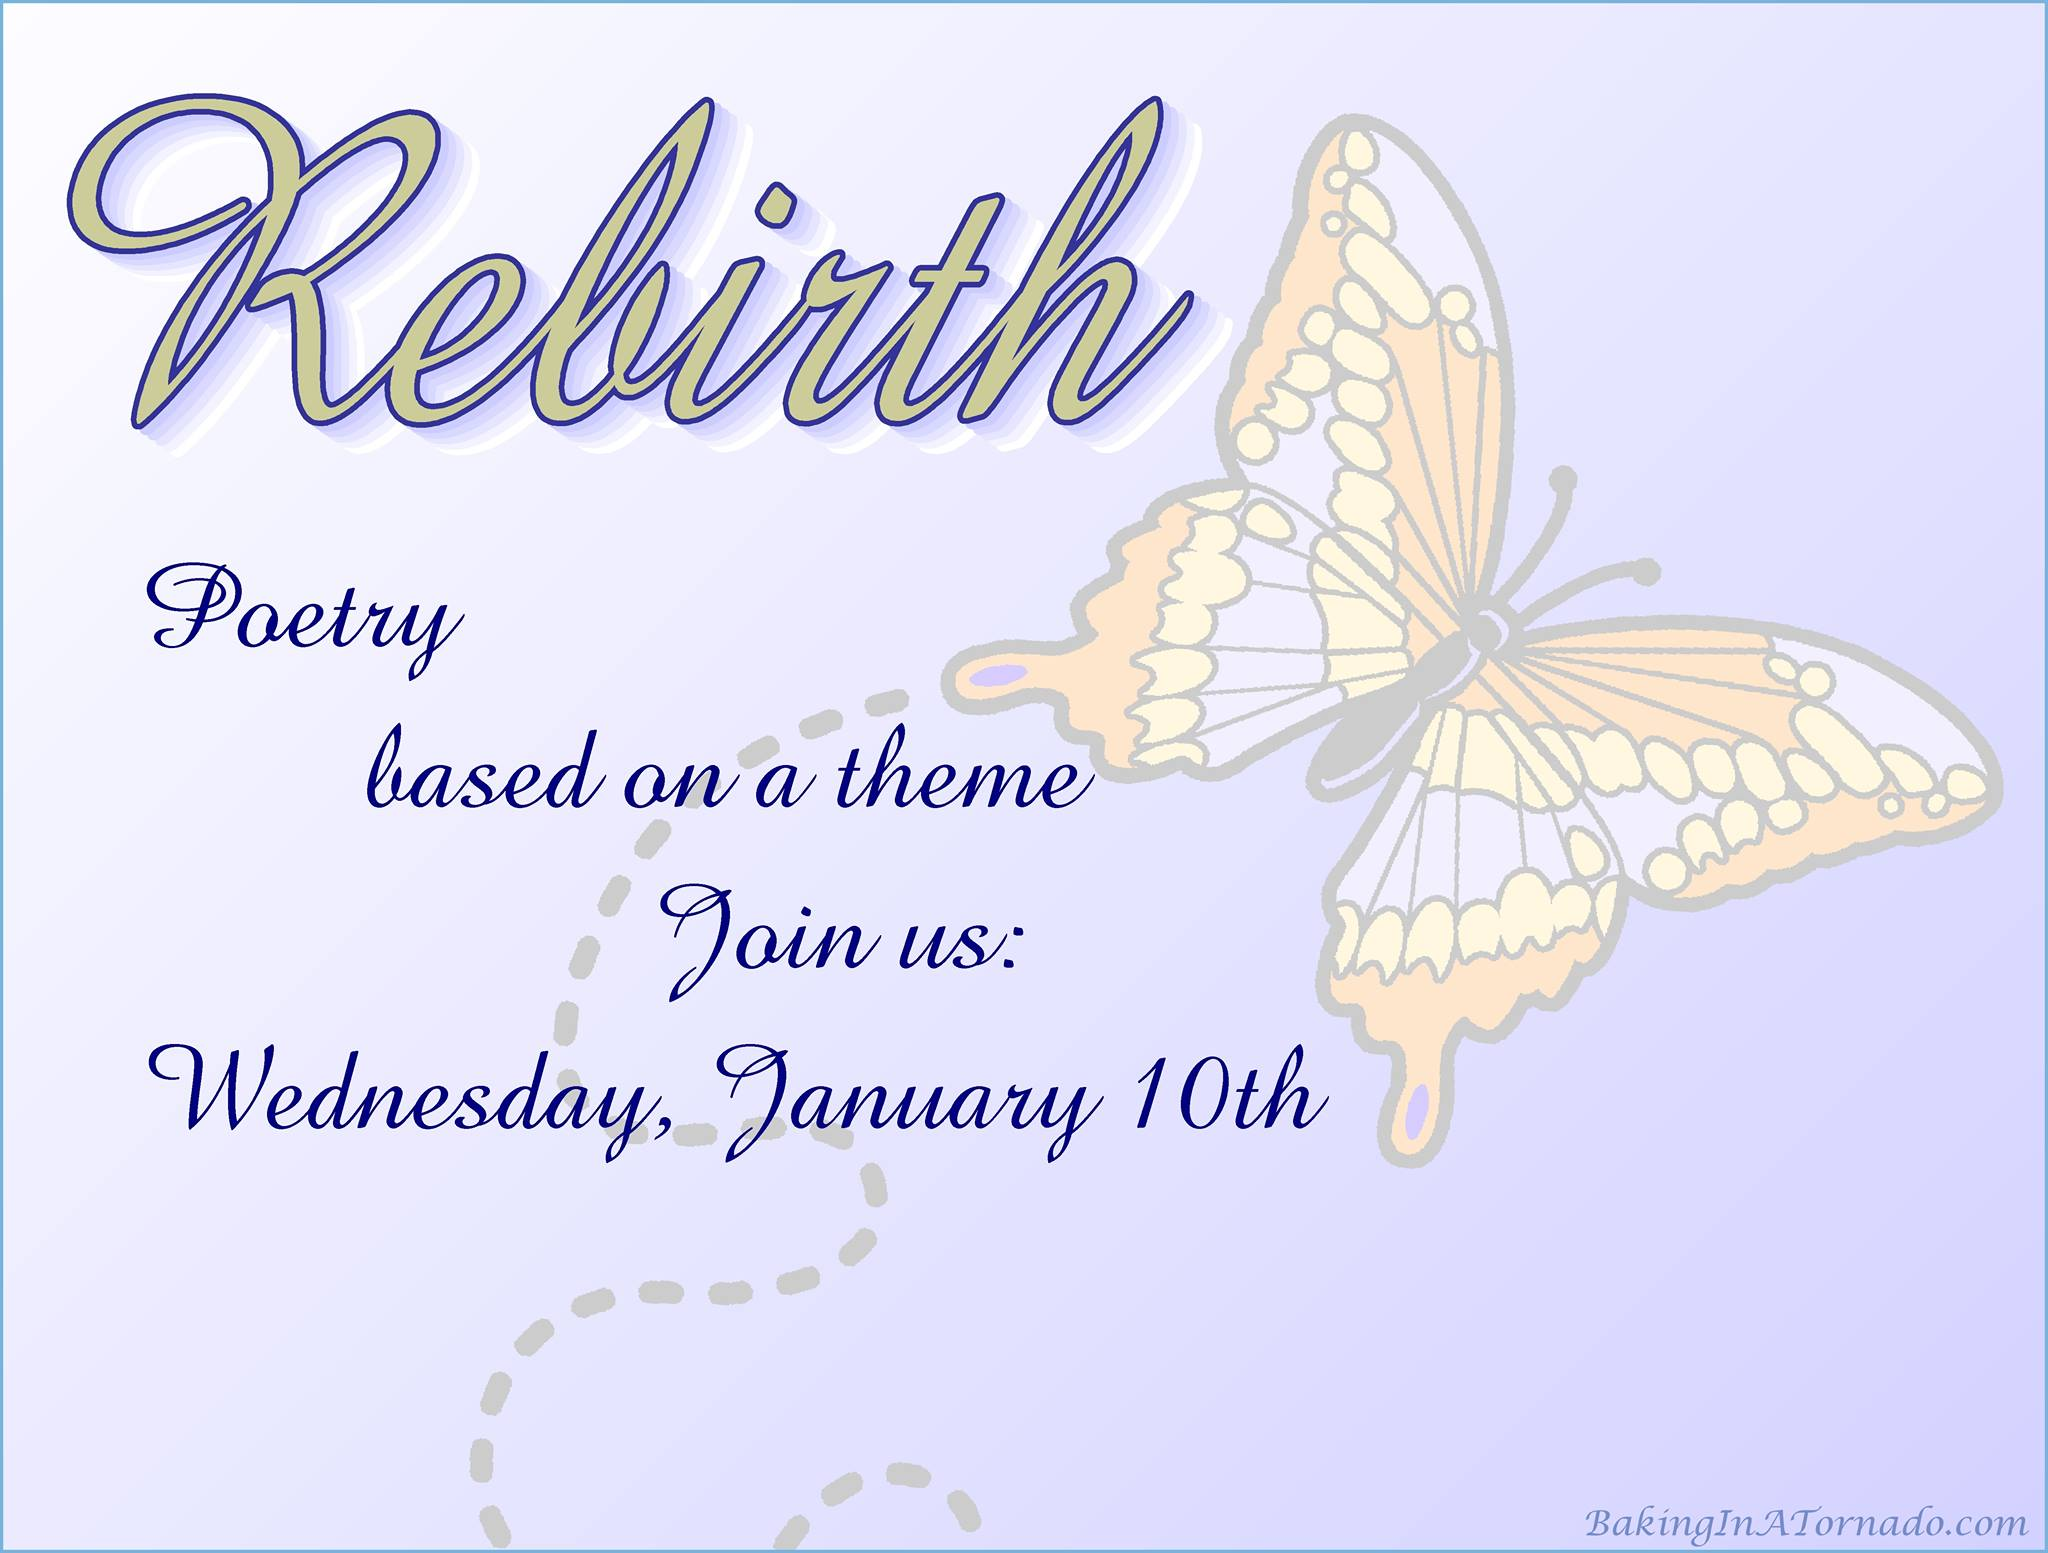 Rebirth and Renewal (A Poem)